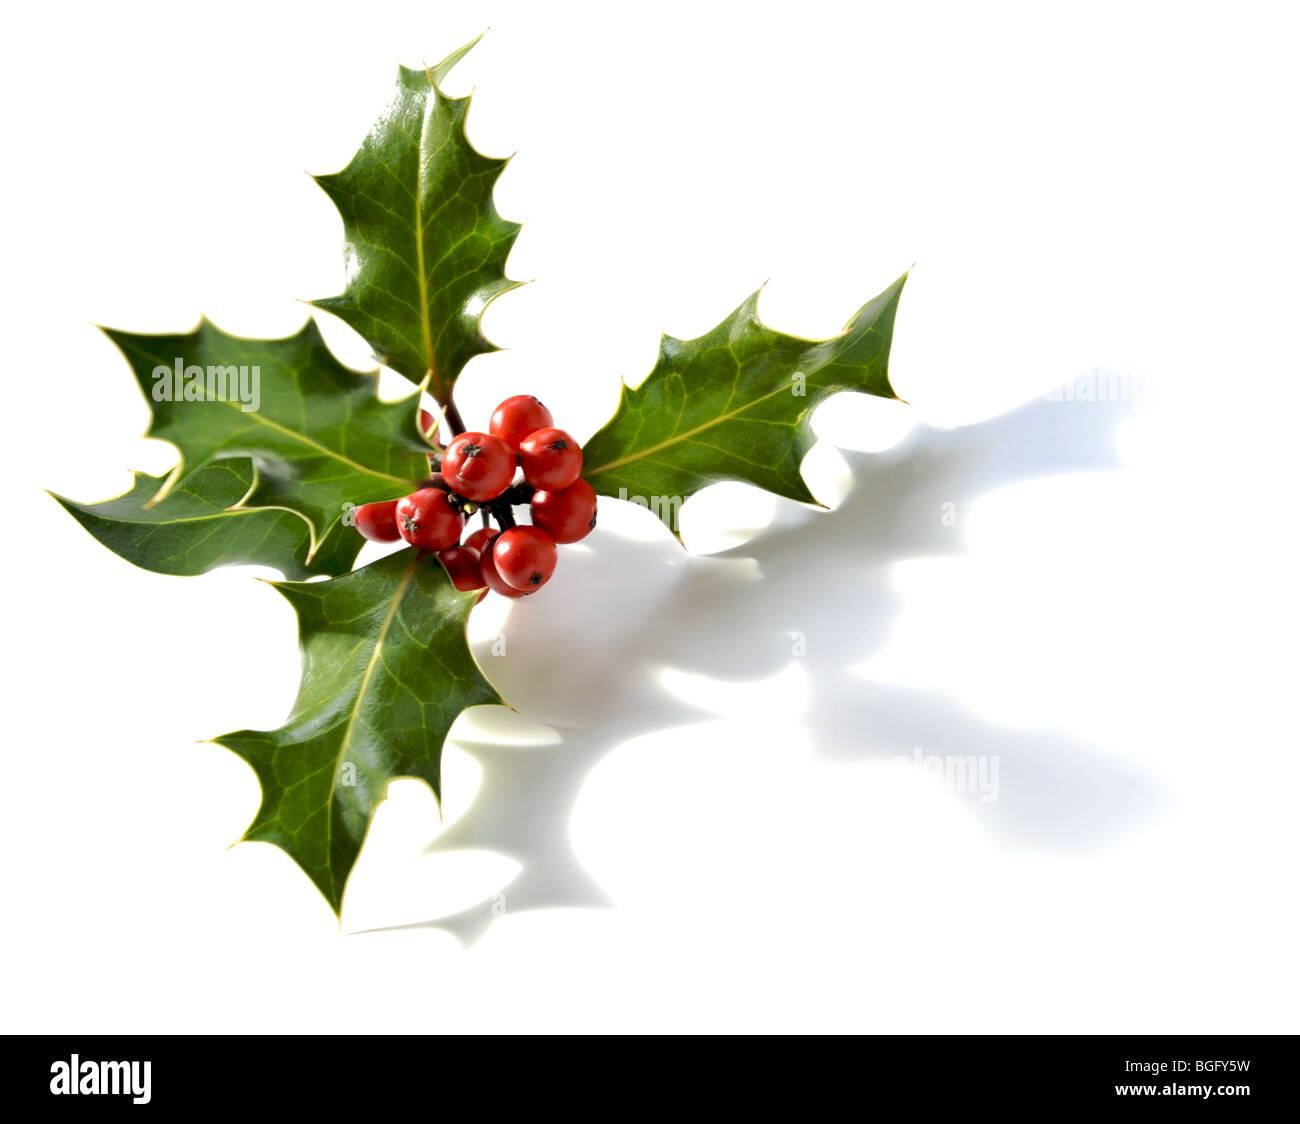 Holly sprig with red berries on white - Stock Image